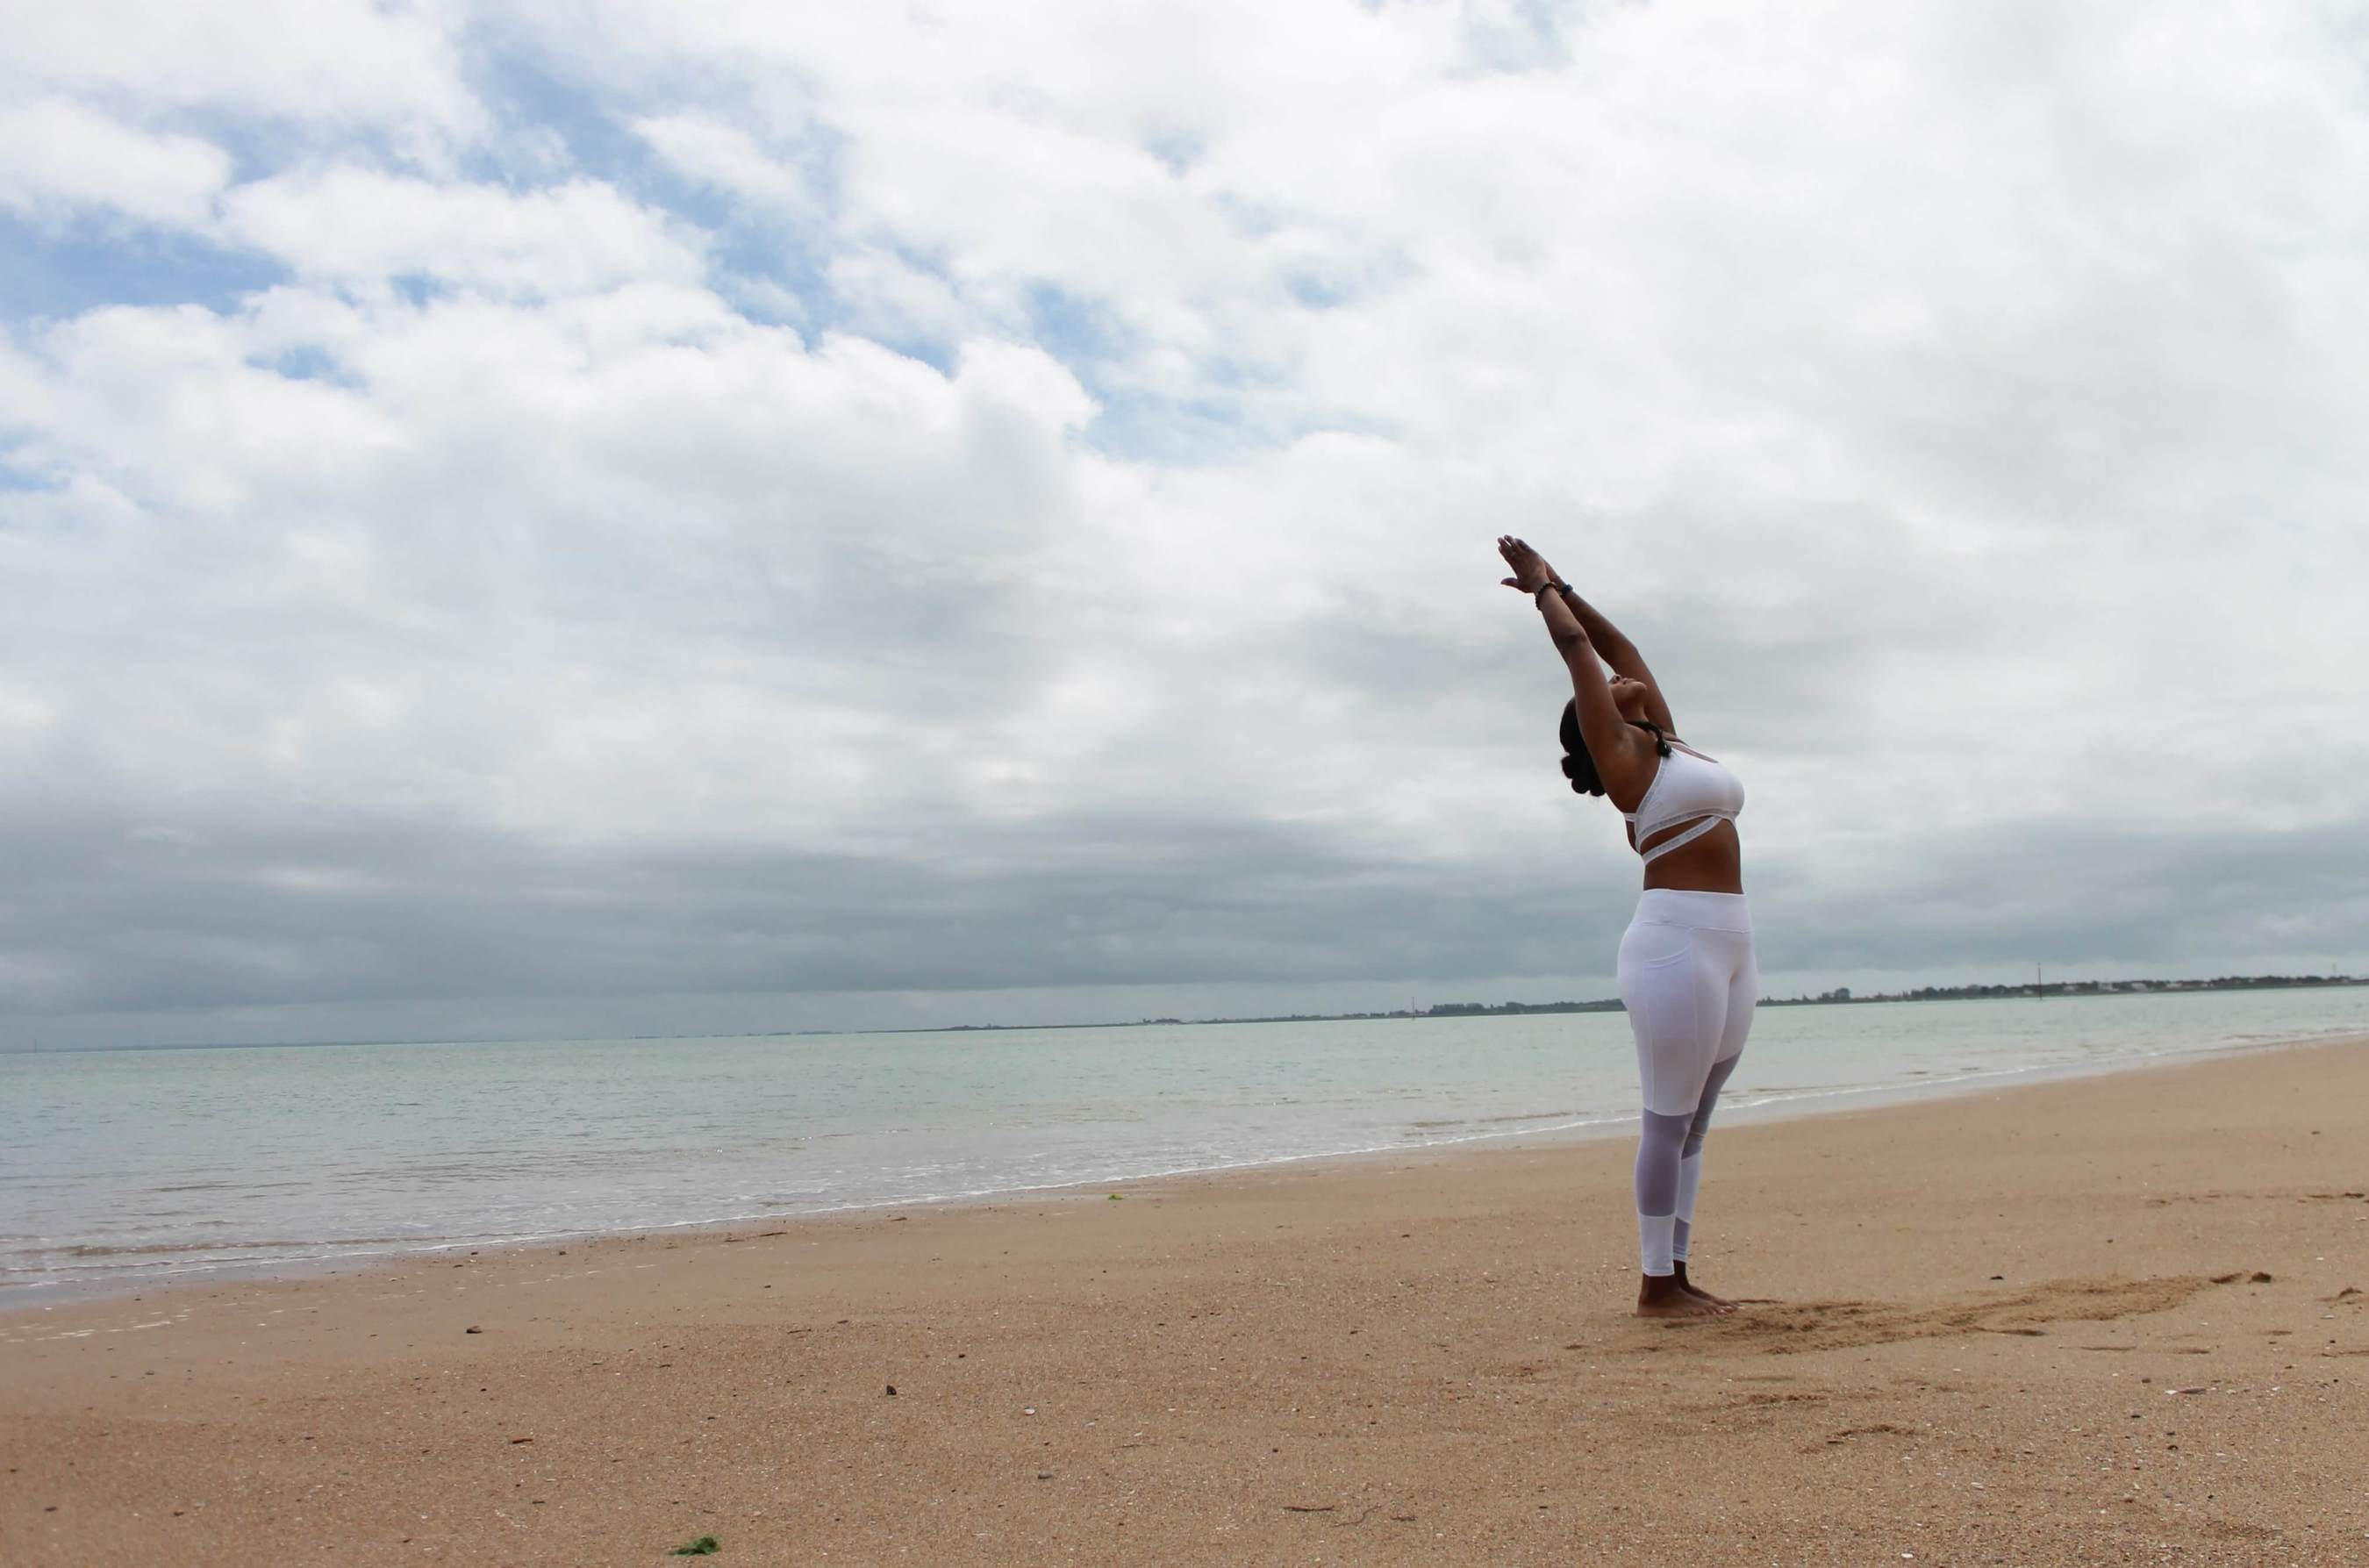 A woman is standing on an empty, peaceful beach. She's wearing white exercise clothes and stretching, greeting the day.